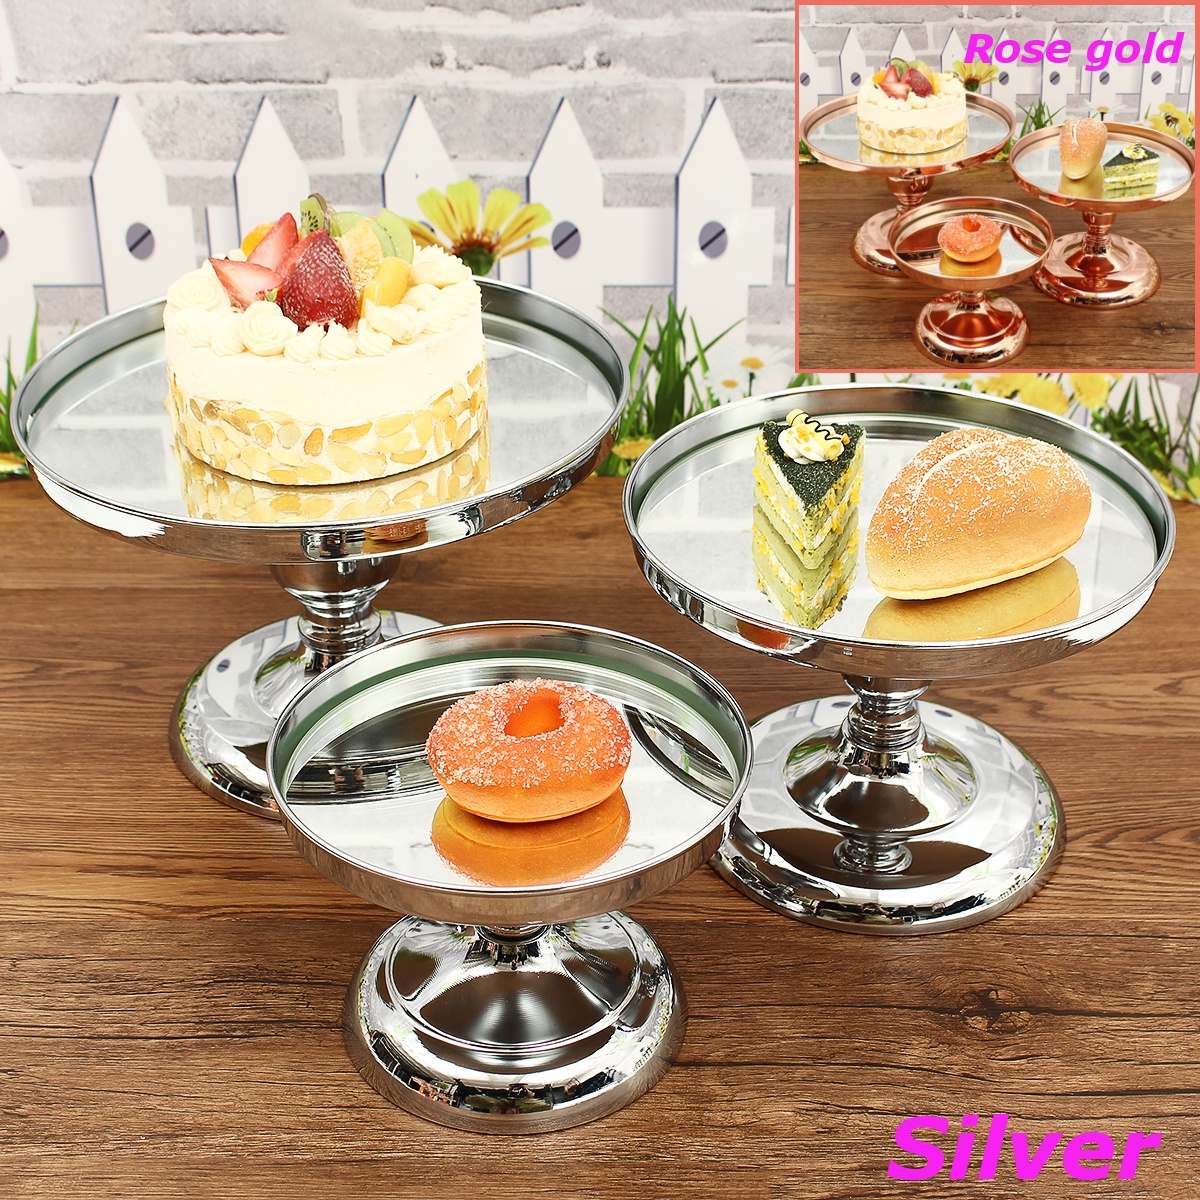 20/25/30CM Metal Cake Cupcake Food Stand Round Wedding Party Display Holder Decorations